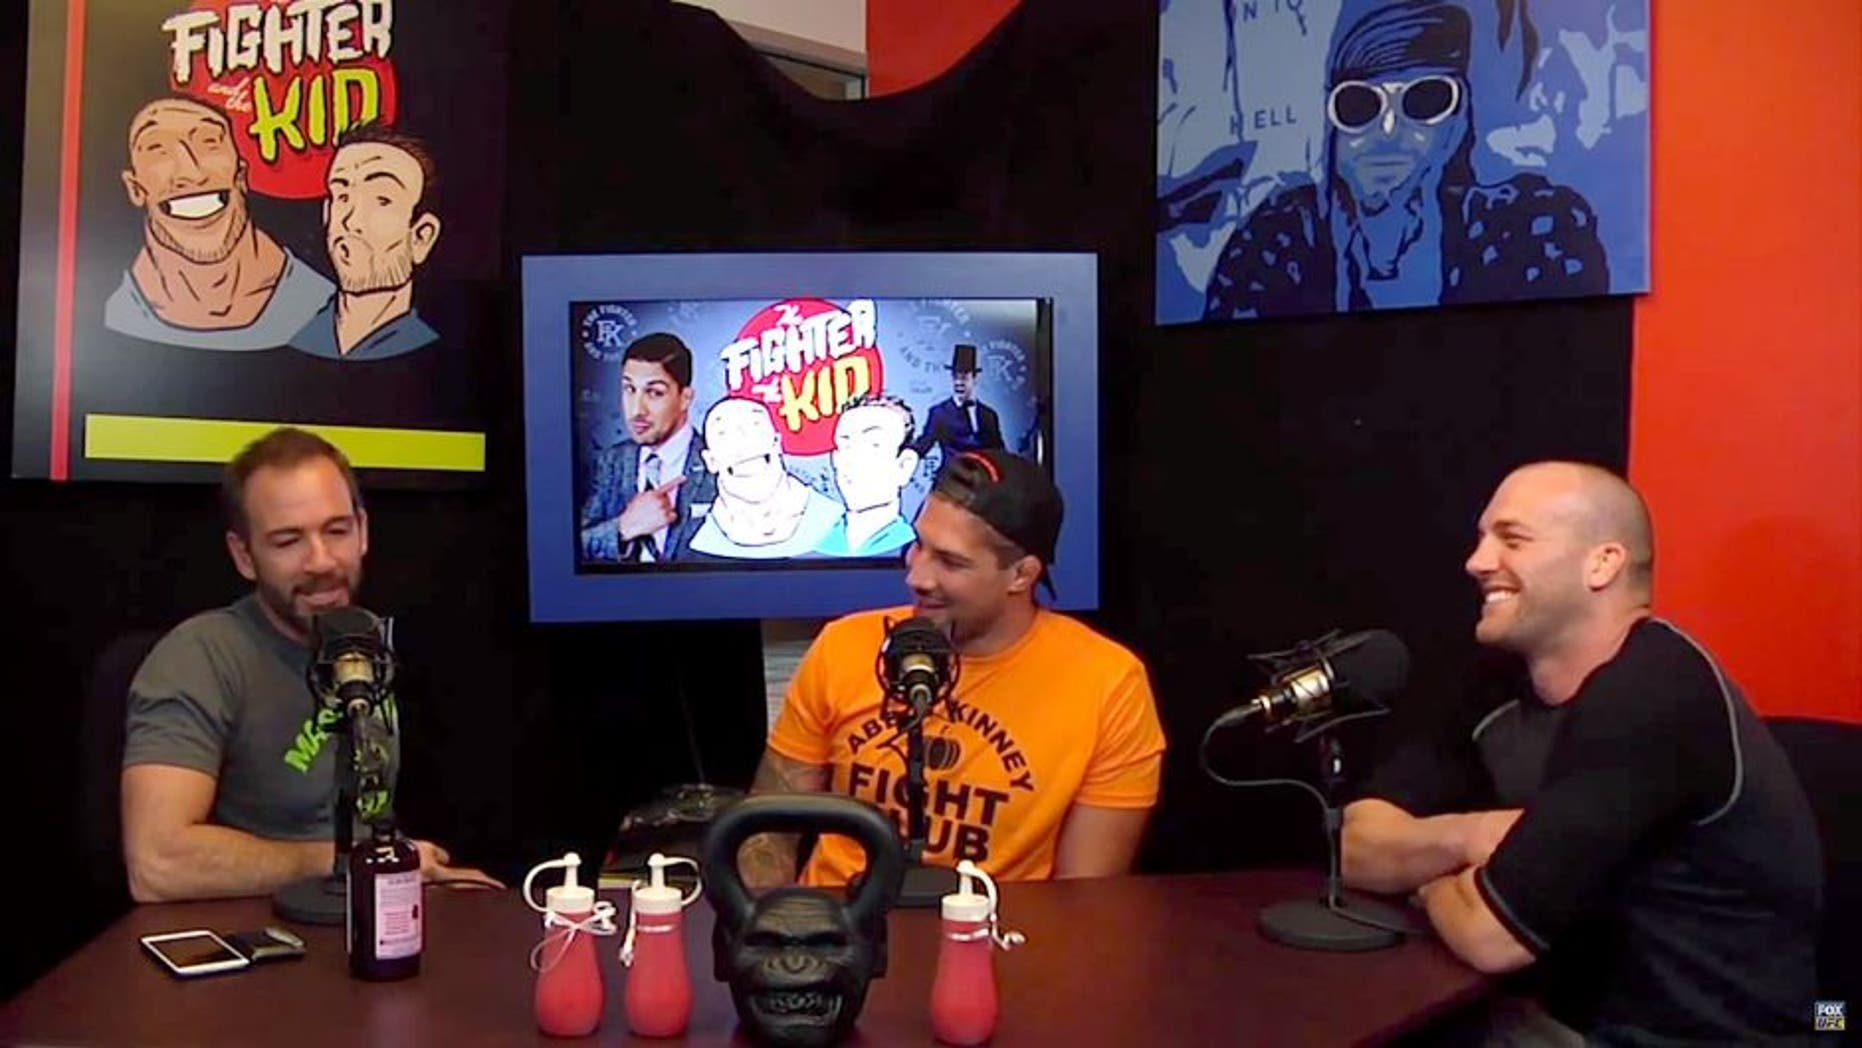 Pat Cummins joins The Fighter and The Kid UFC Light Heavyweight Pat Cummins joins Brendan Schaub and Bryan Callen on The Fighter and The Kid.